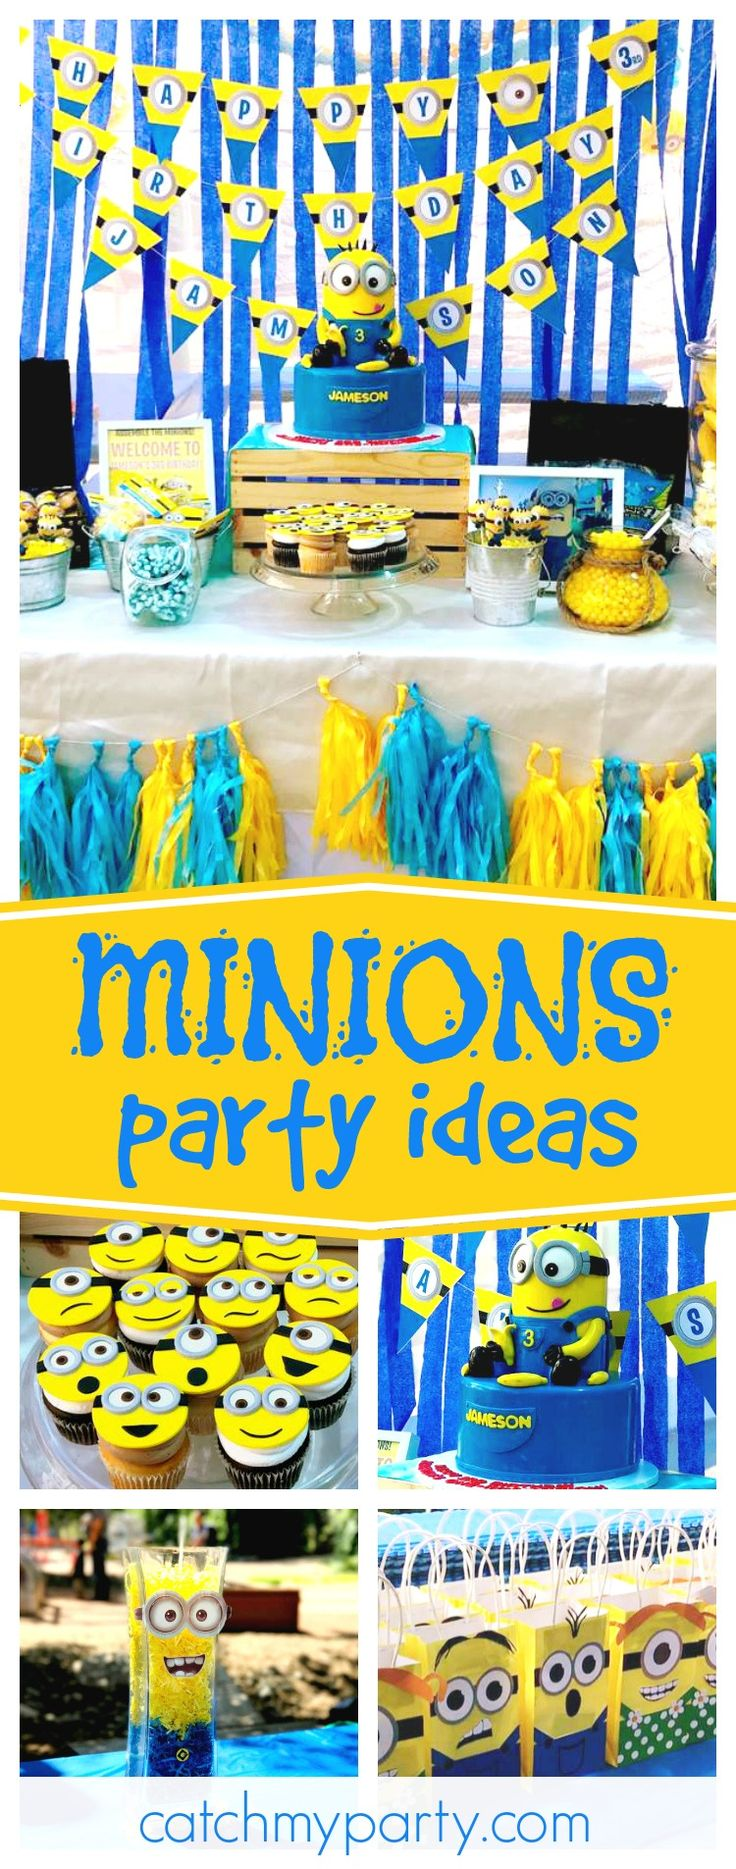 Check out this fun One-in- a Minion Birthday party! The minion cupcakes are so cute!! See more party ideas and share yours at CatchMyParty.com